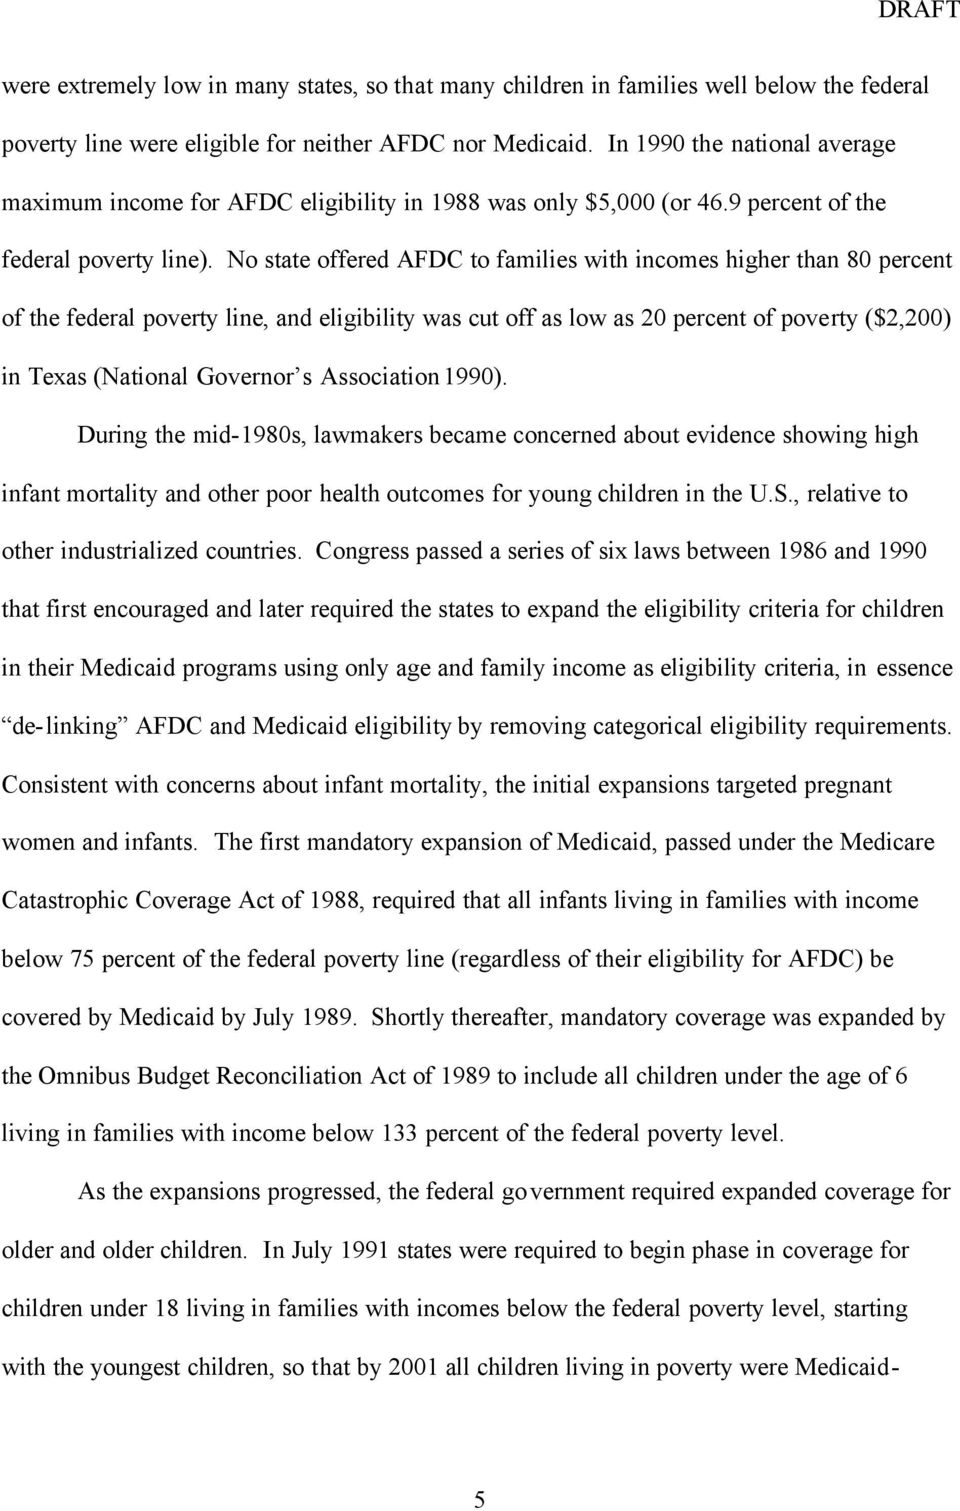 No state offered AFDC to families with incomes higher than 80 percent of the federal poverty line, and eligibility was cut off as low as 20 percent of poverty ($2,200) in Texas (National Governor s